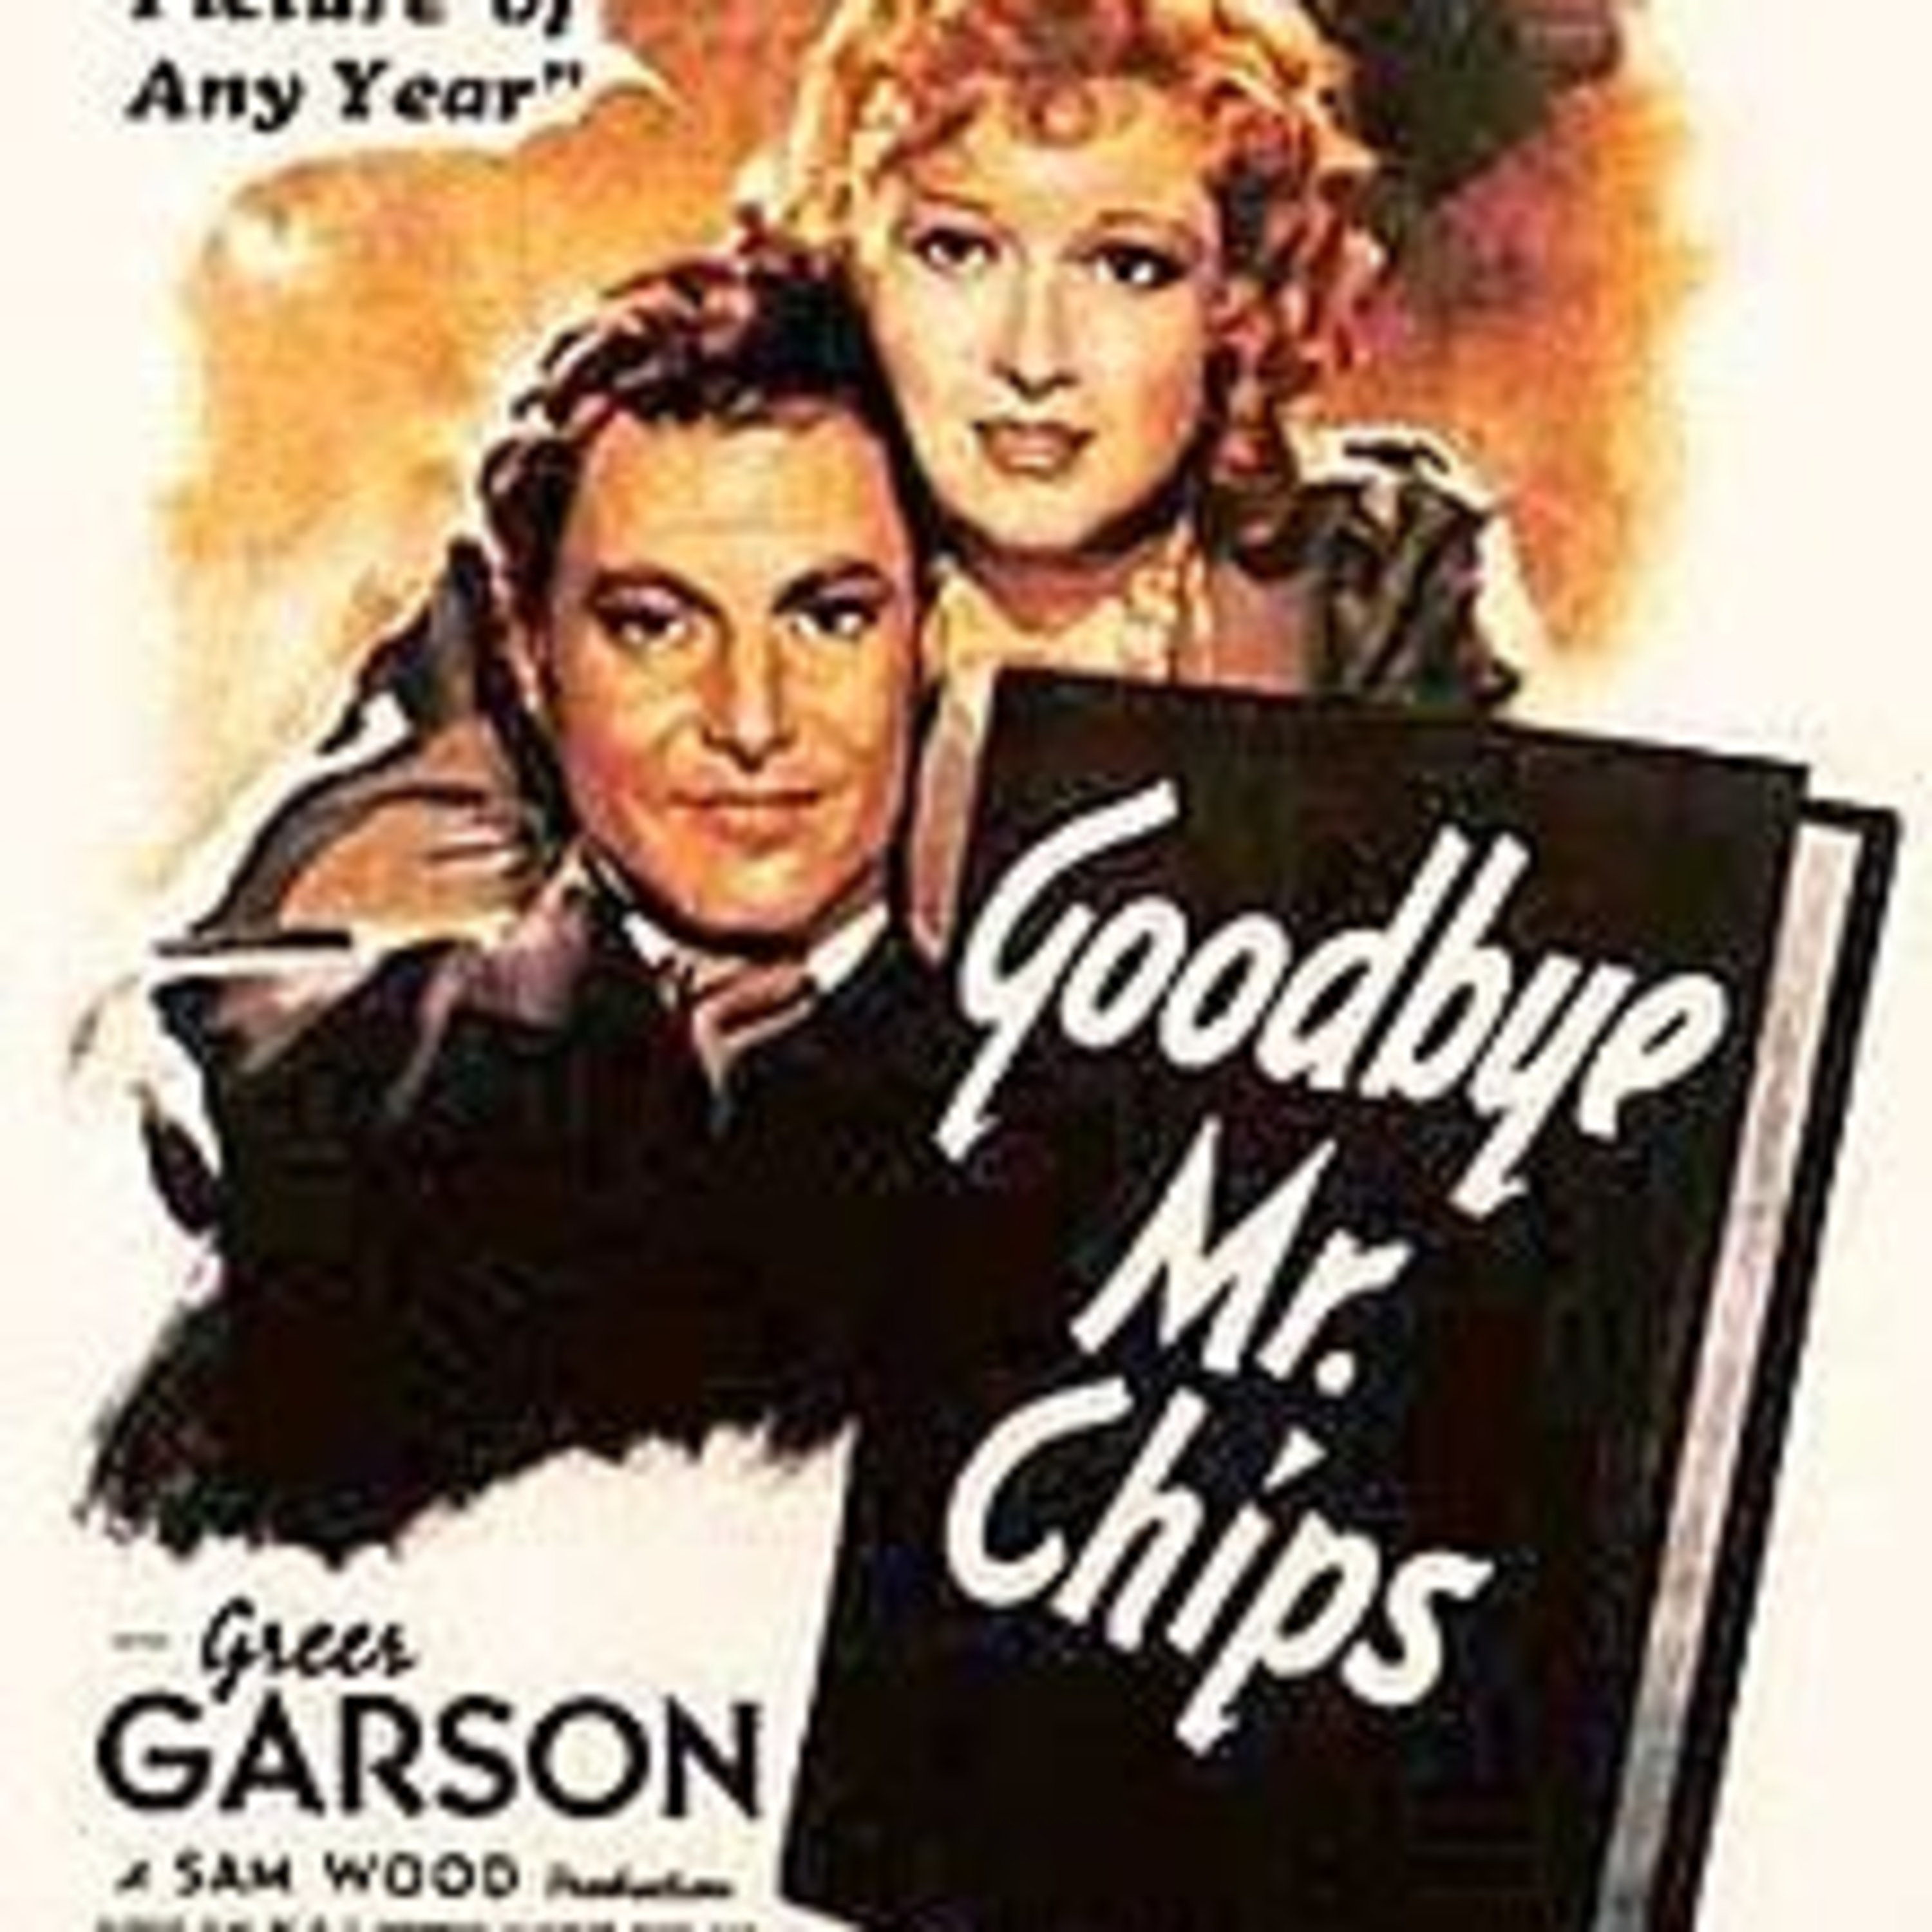 Goodbye - Mr. Chips - Laurence Olivier & James Hilton - All-Star Radio Dramas of Classic Films - Lux Radio Theater